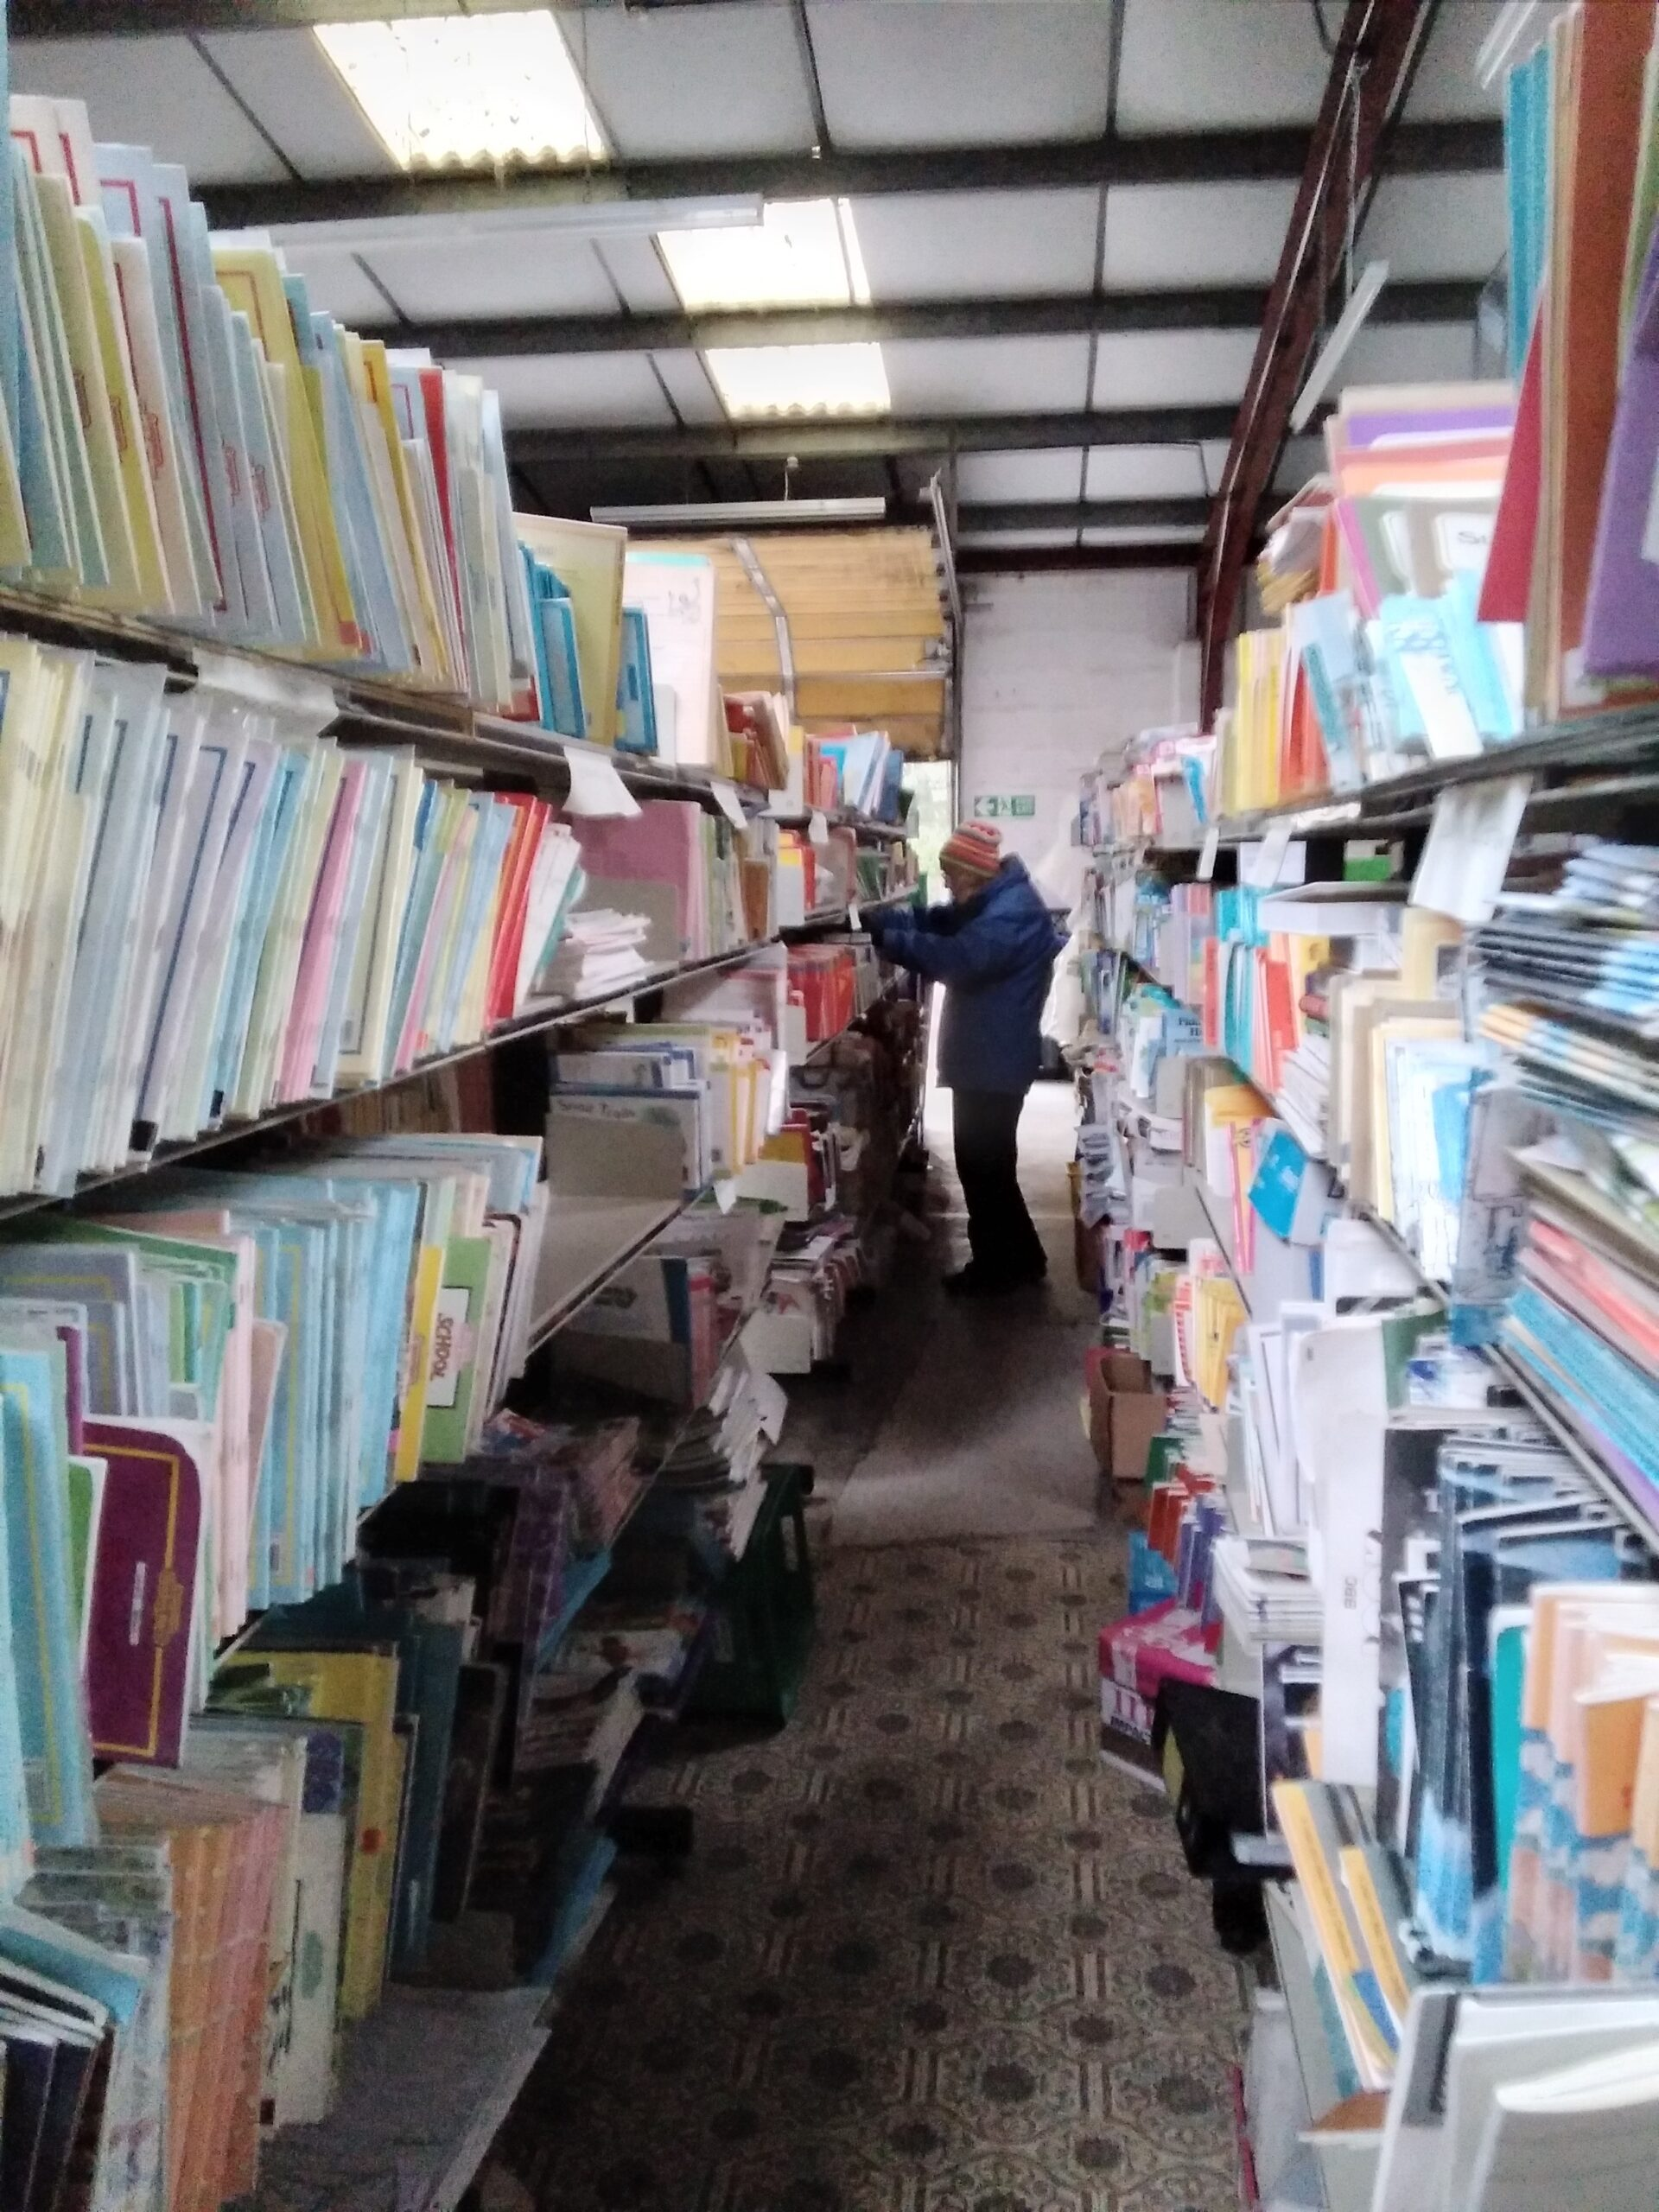 Sorting out books